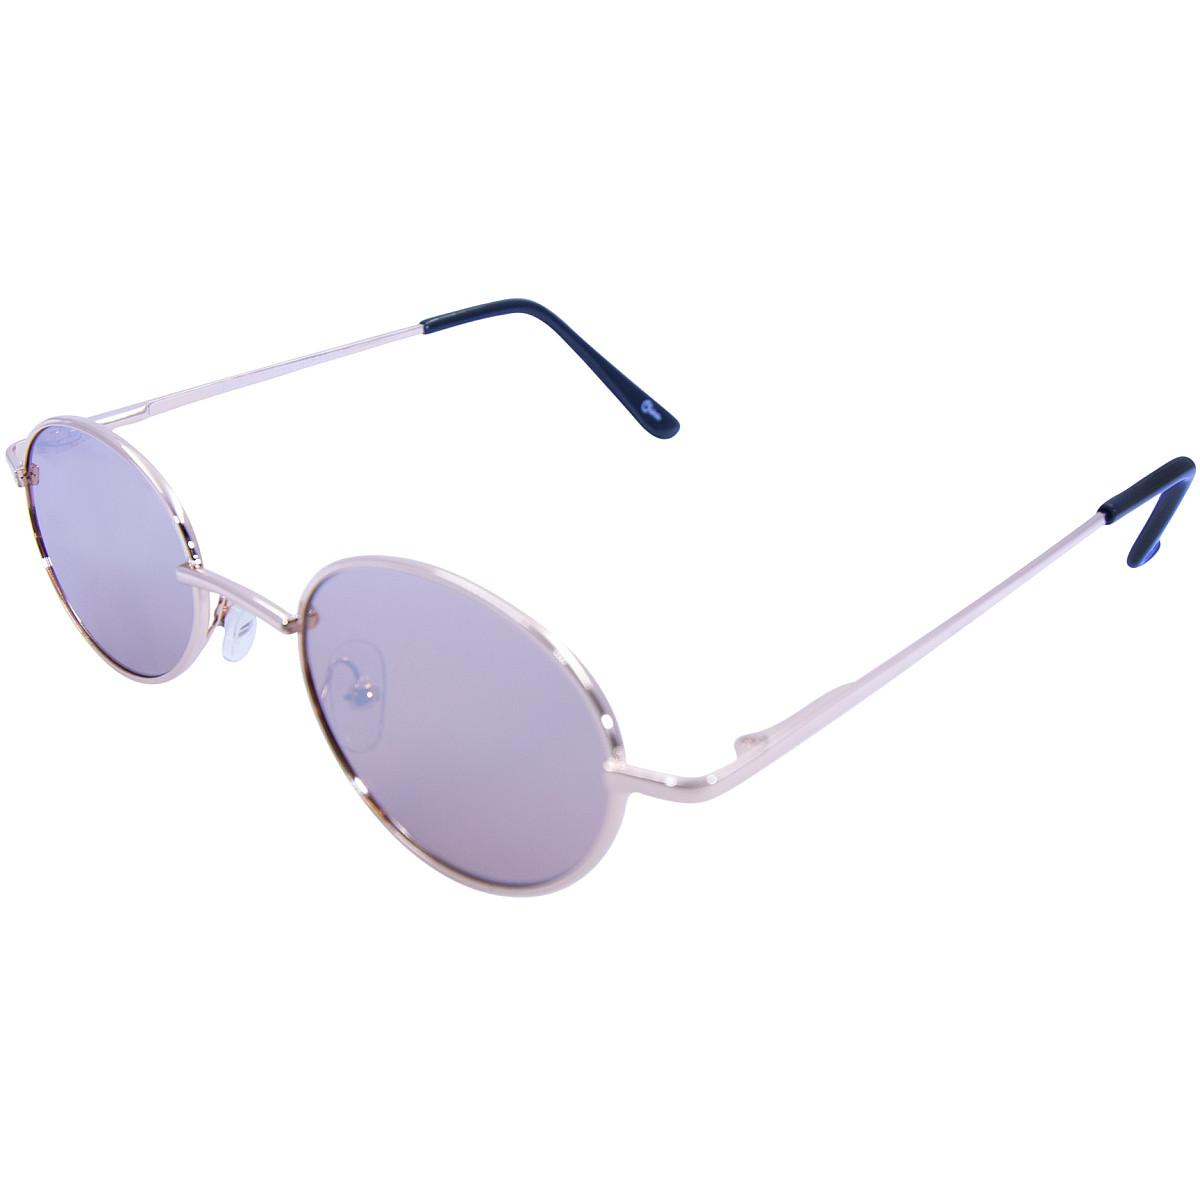 96b702ab43a Details about ROBIN RUTH AUSTIN LIMITED COLLECTION DESIGNER SUNGLASSES-PINK